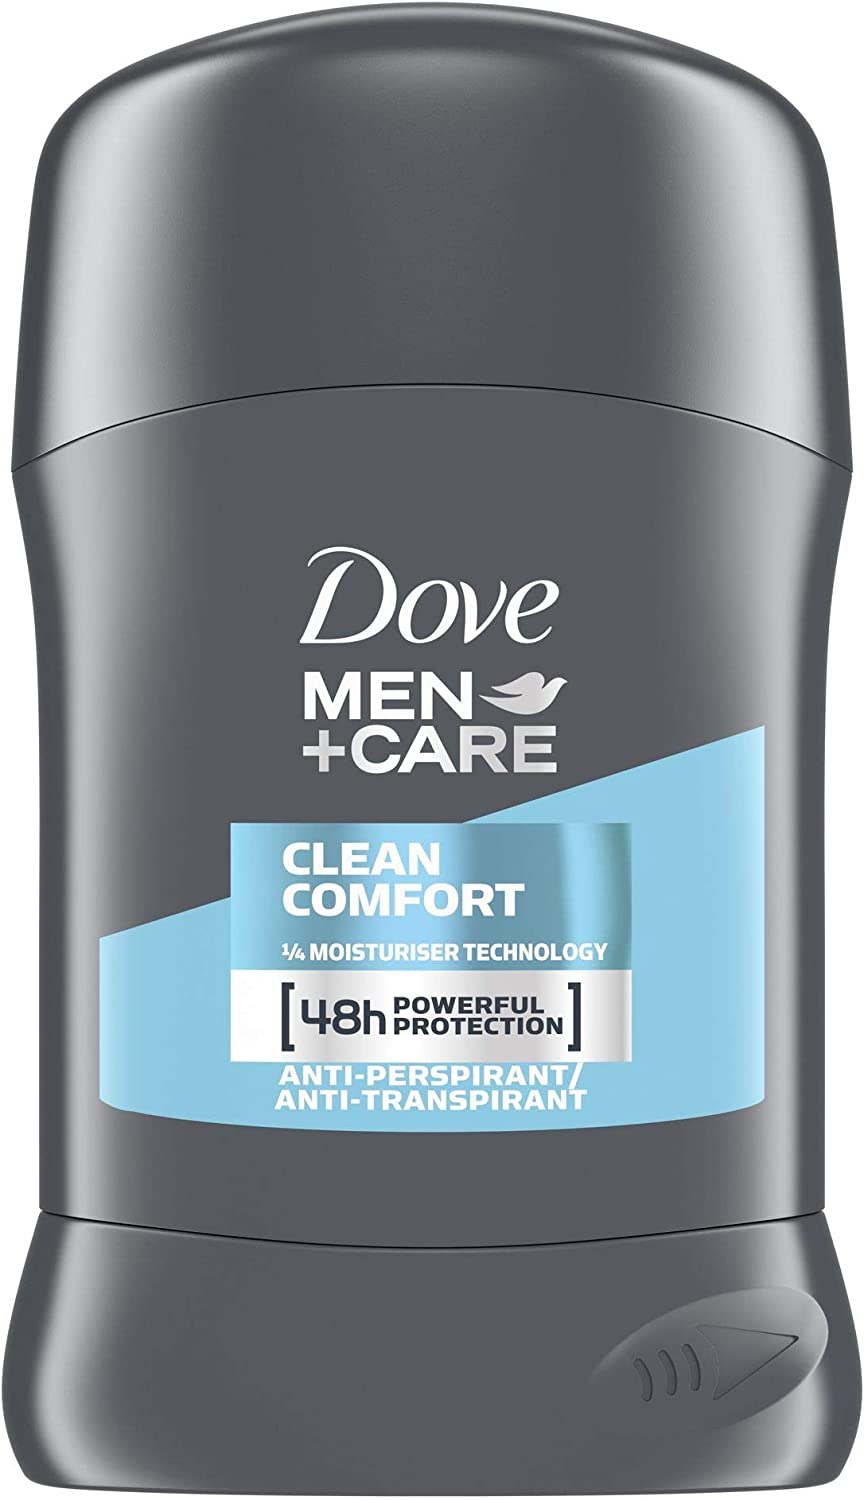 Desodorante en barra antitranspirante Dove Plus Care. Para hombre, modelo Clean Comfort, 50 ml, Pack of 6